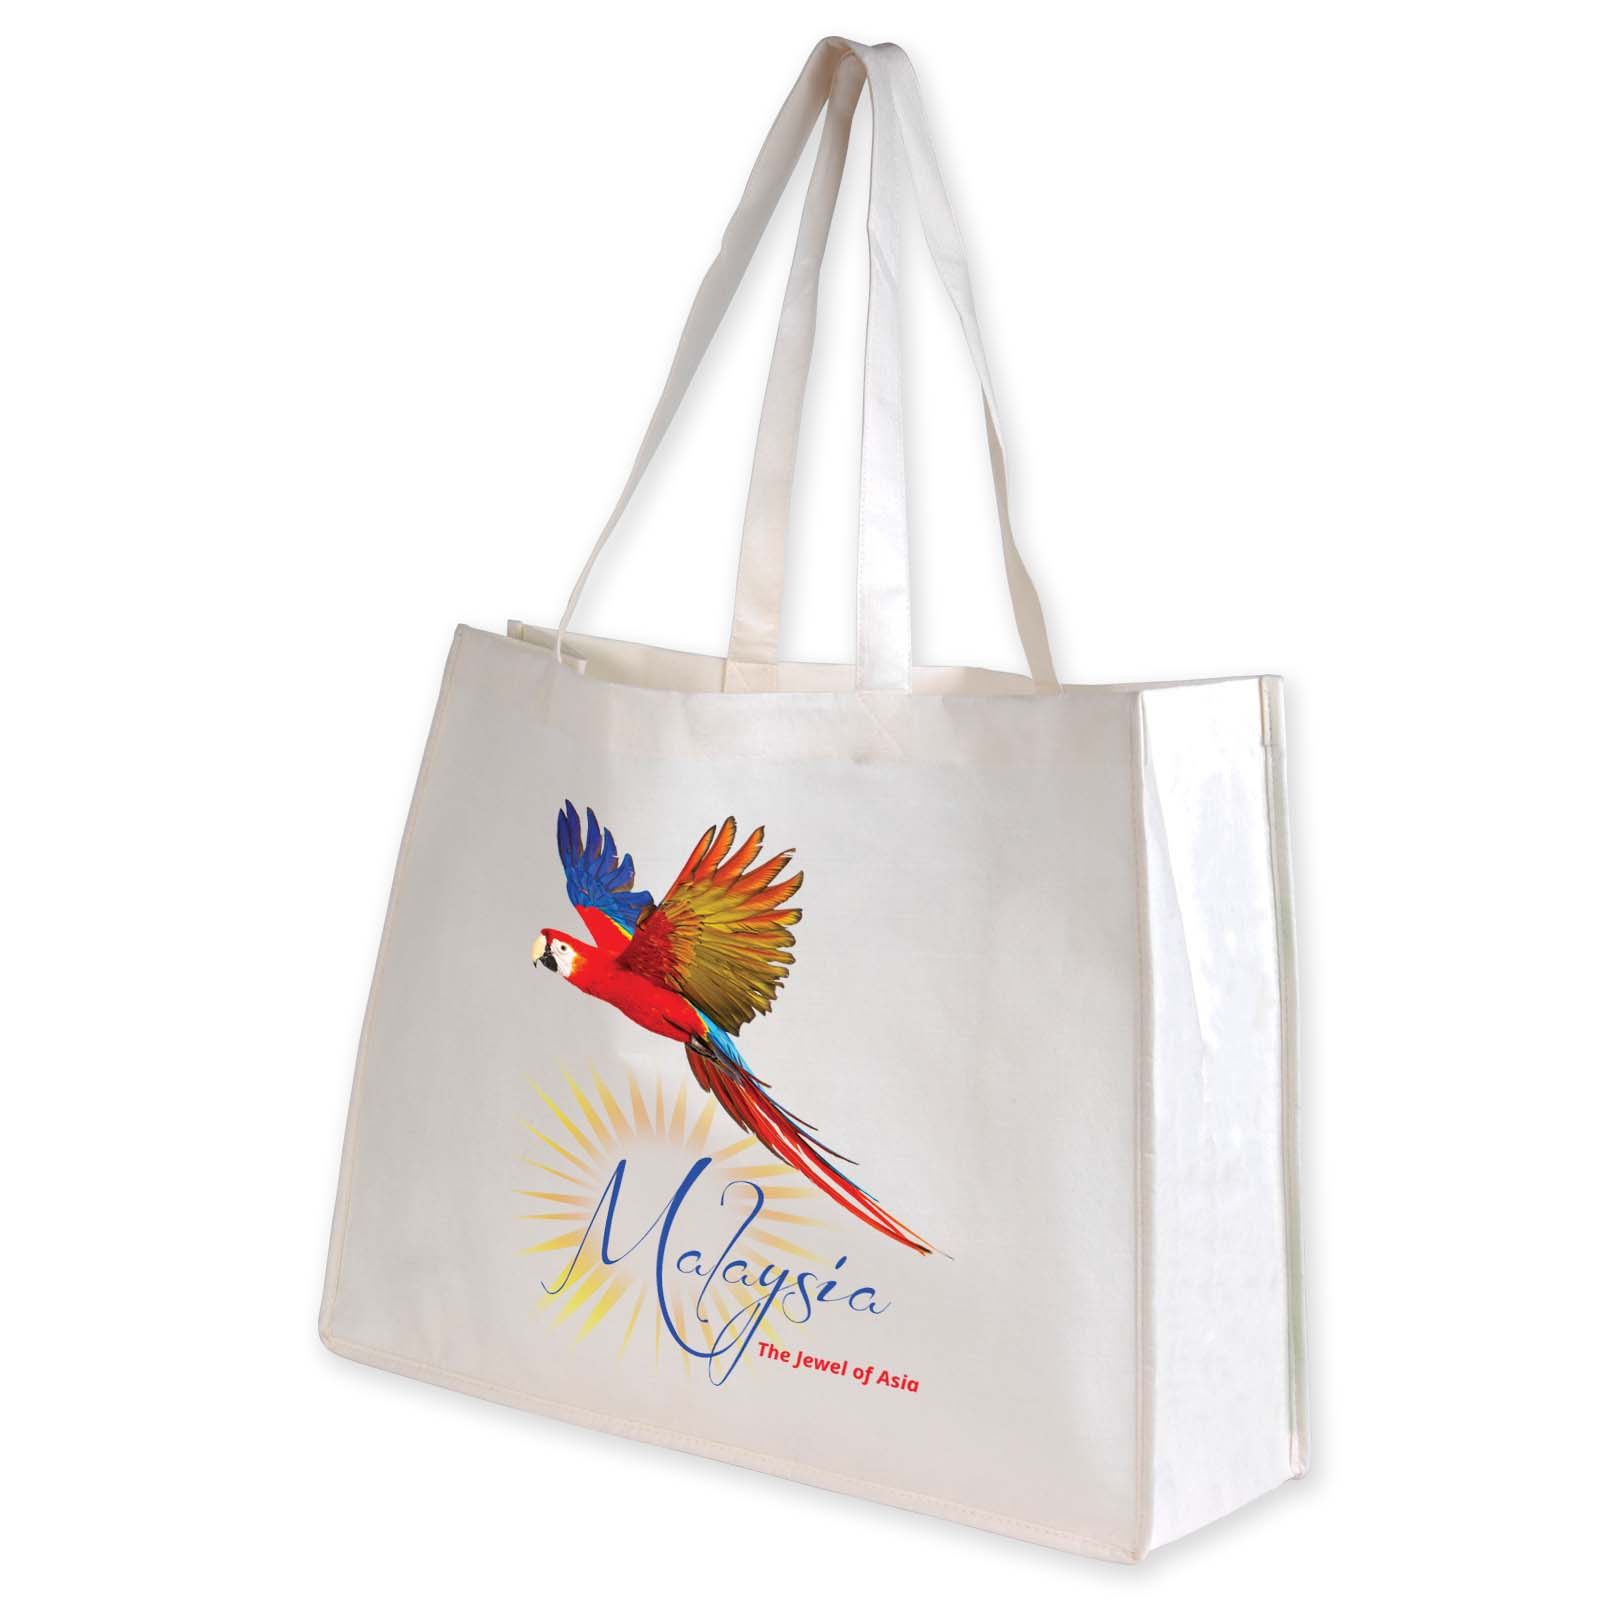 Giant Bamboo Carry Bag with Double Handles - 100 GSM - Includes a 1 colour printed logo